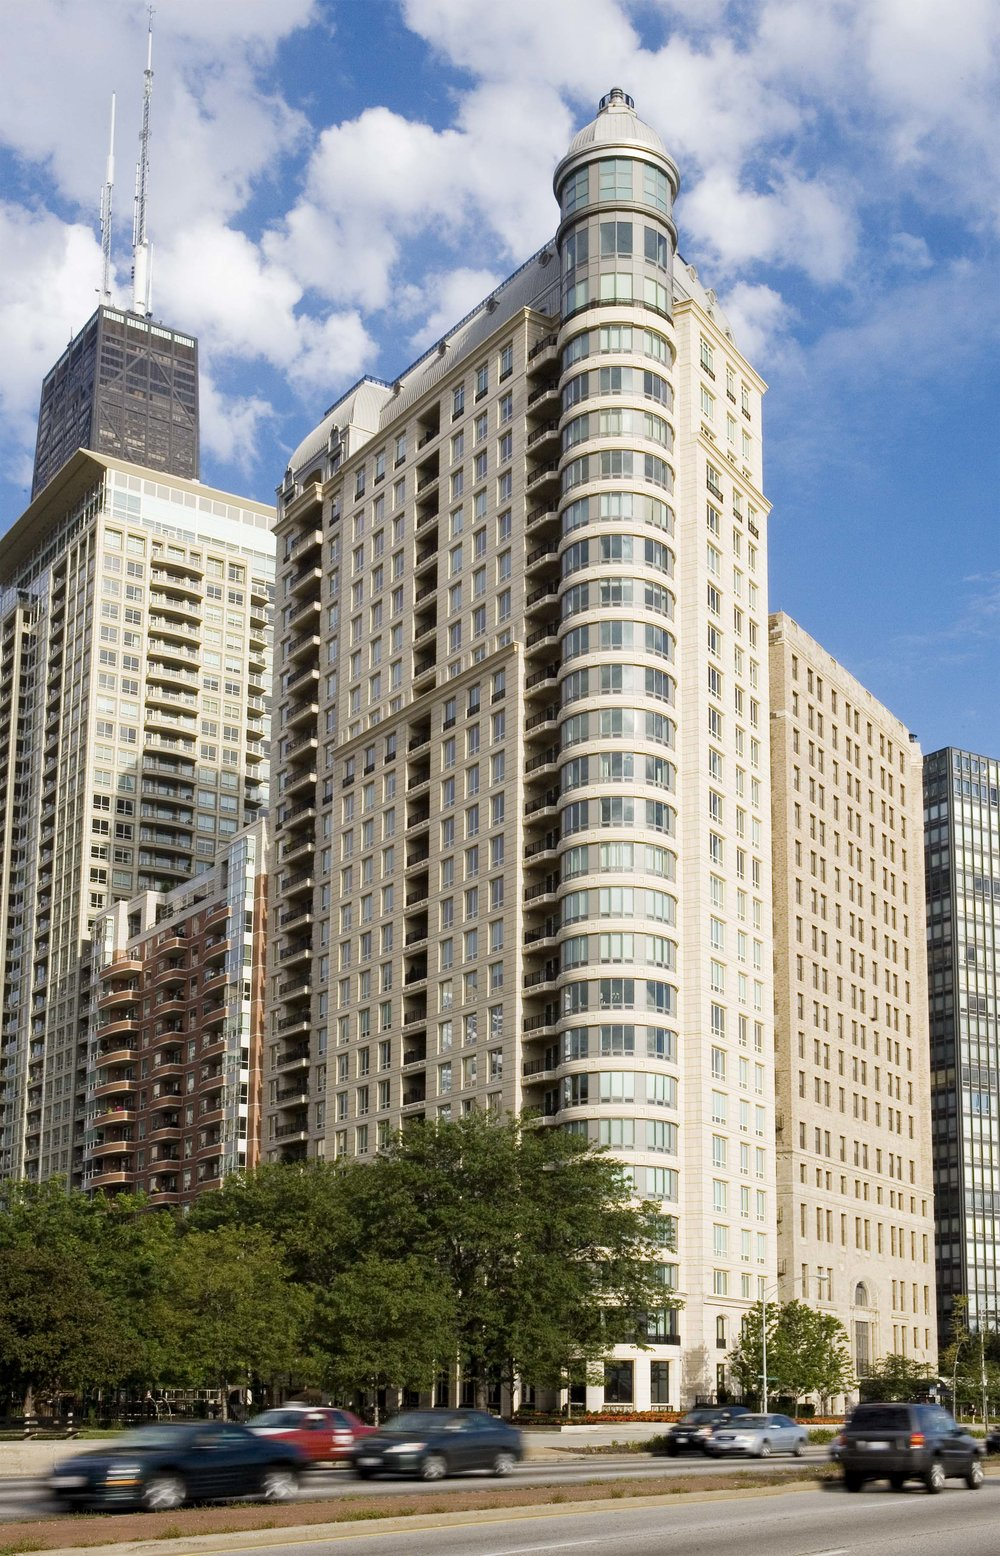 840 North Lake Shore Drive   Chicago, Illinois